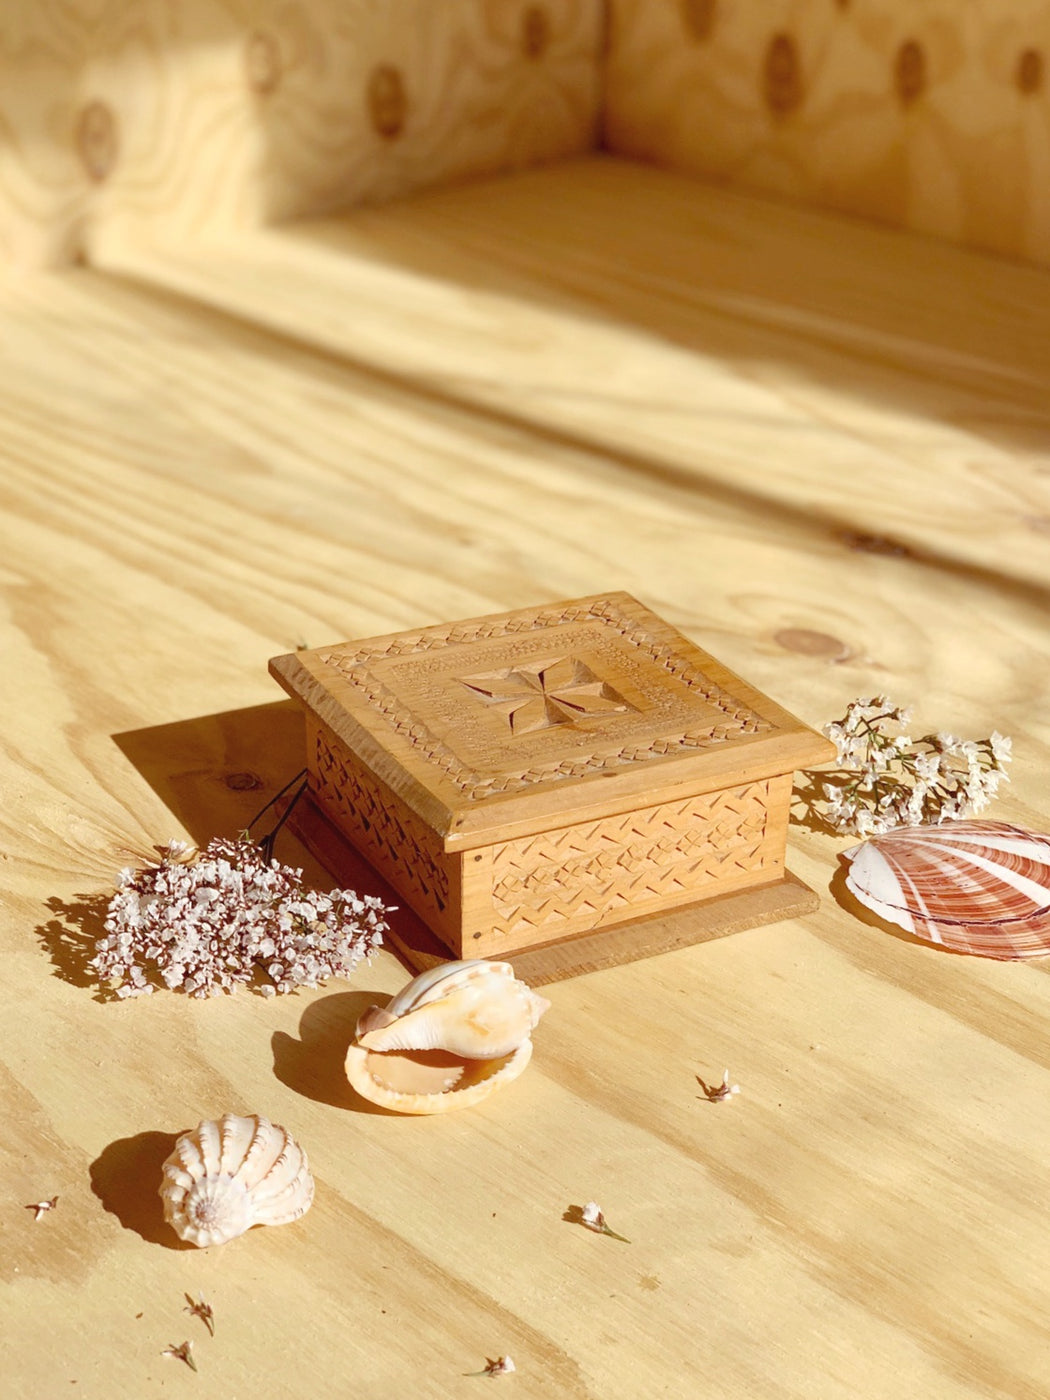 Hand-Carved Wooden Box - Storytellers Workshop